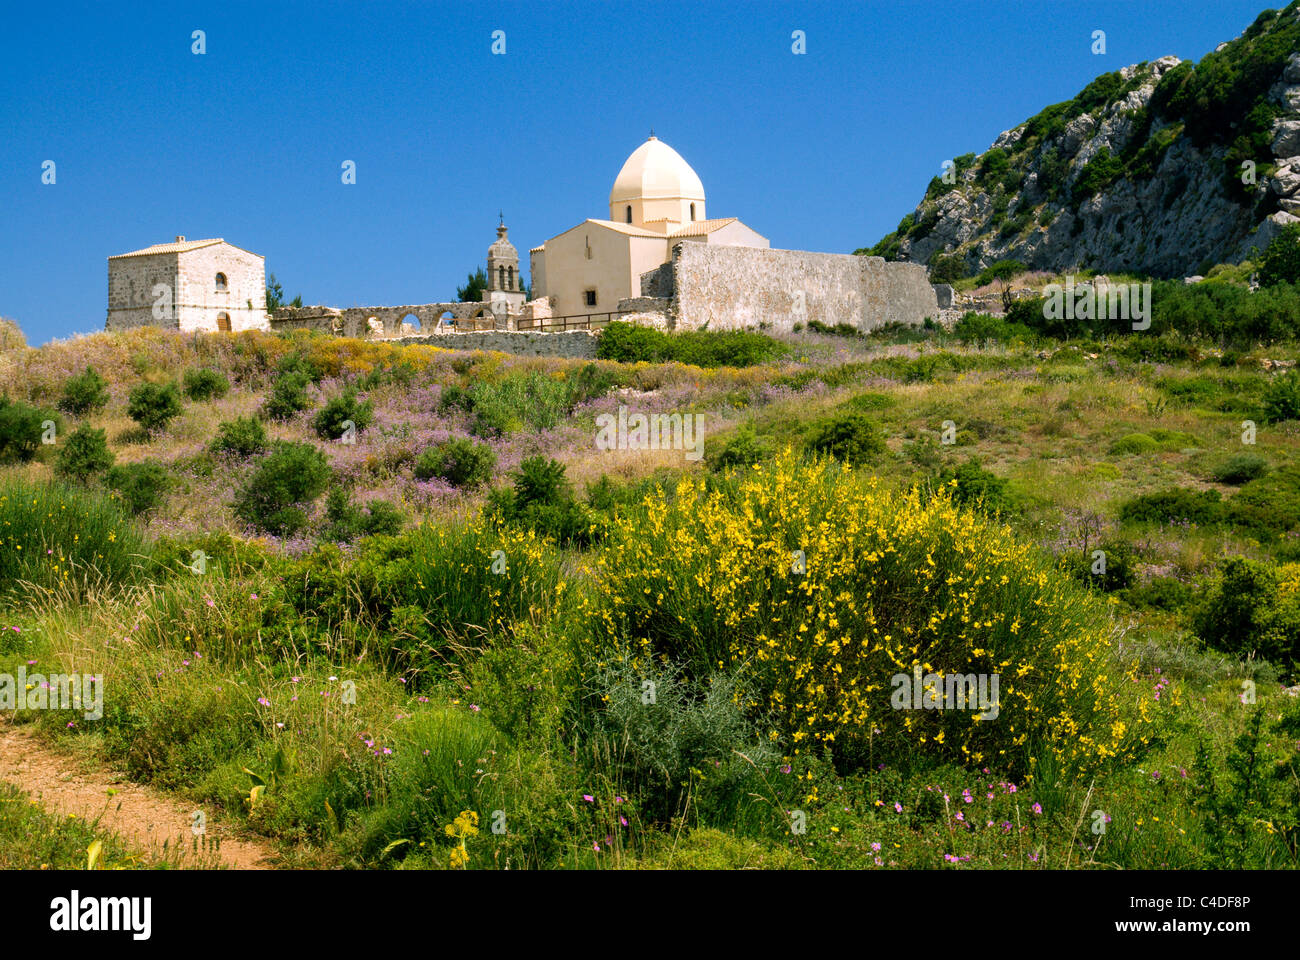 virgin skopiotissas monastry, mount skopos, zante/zakynthos, ionian islands, greece. - Stock Image